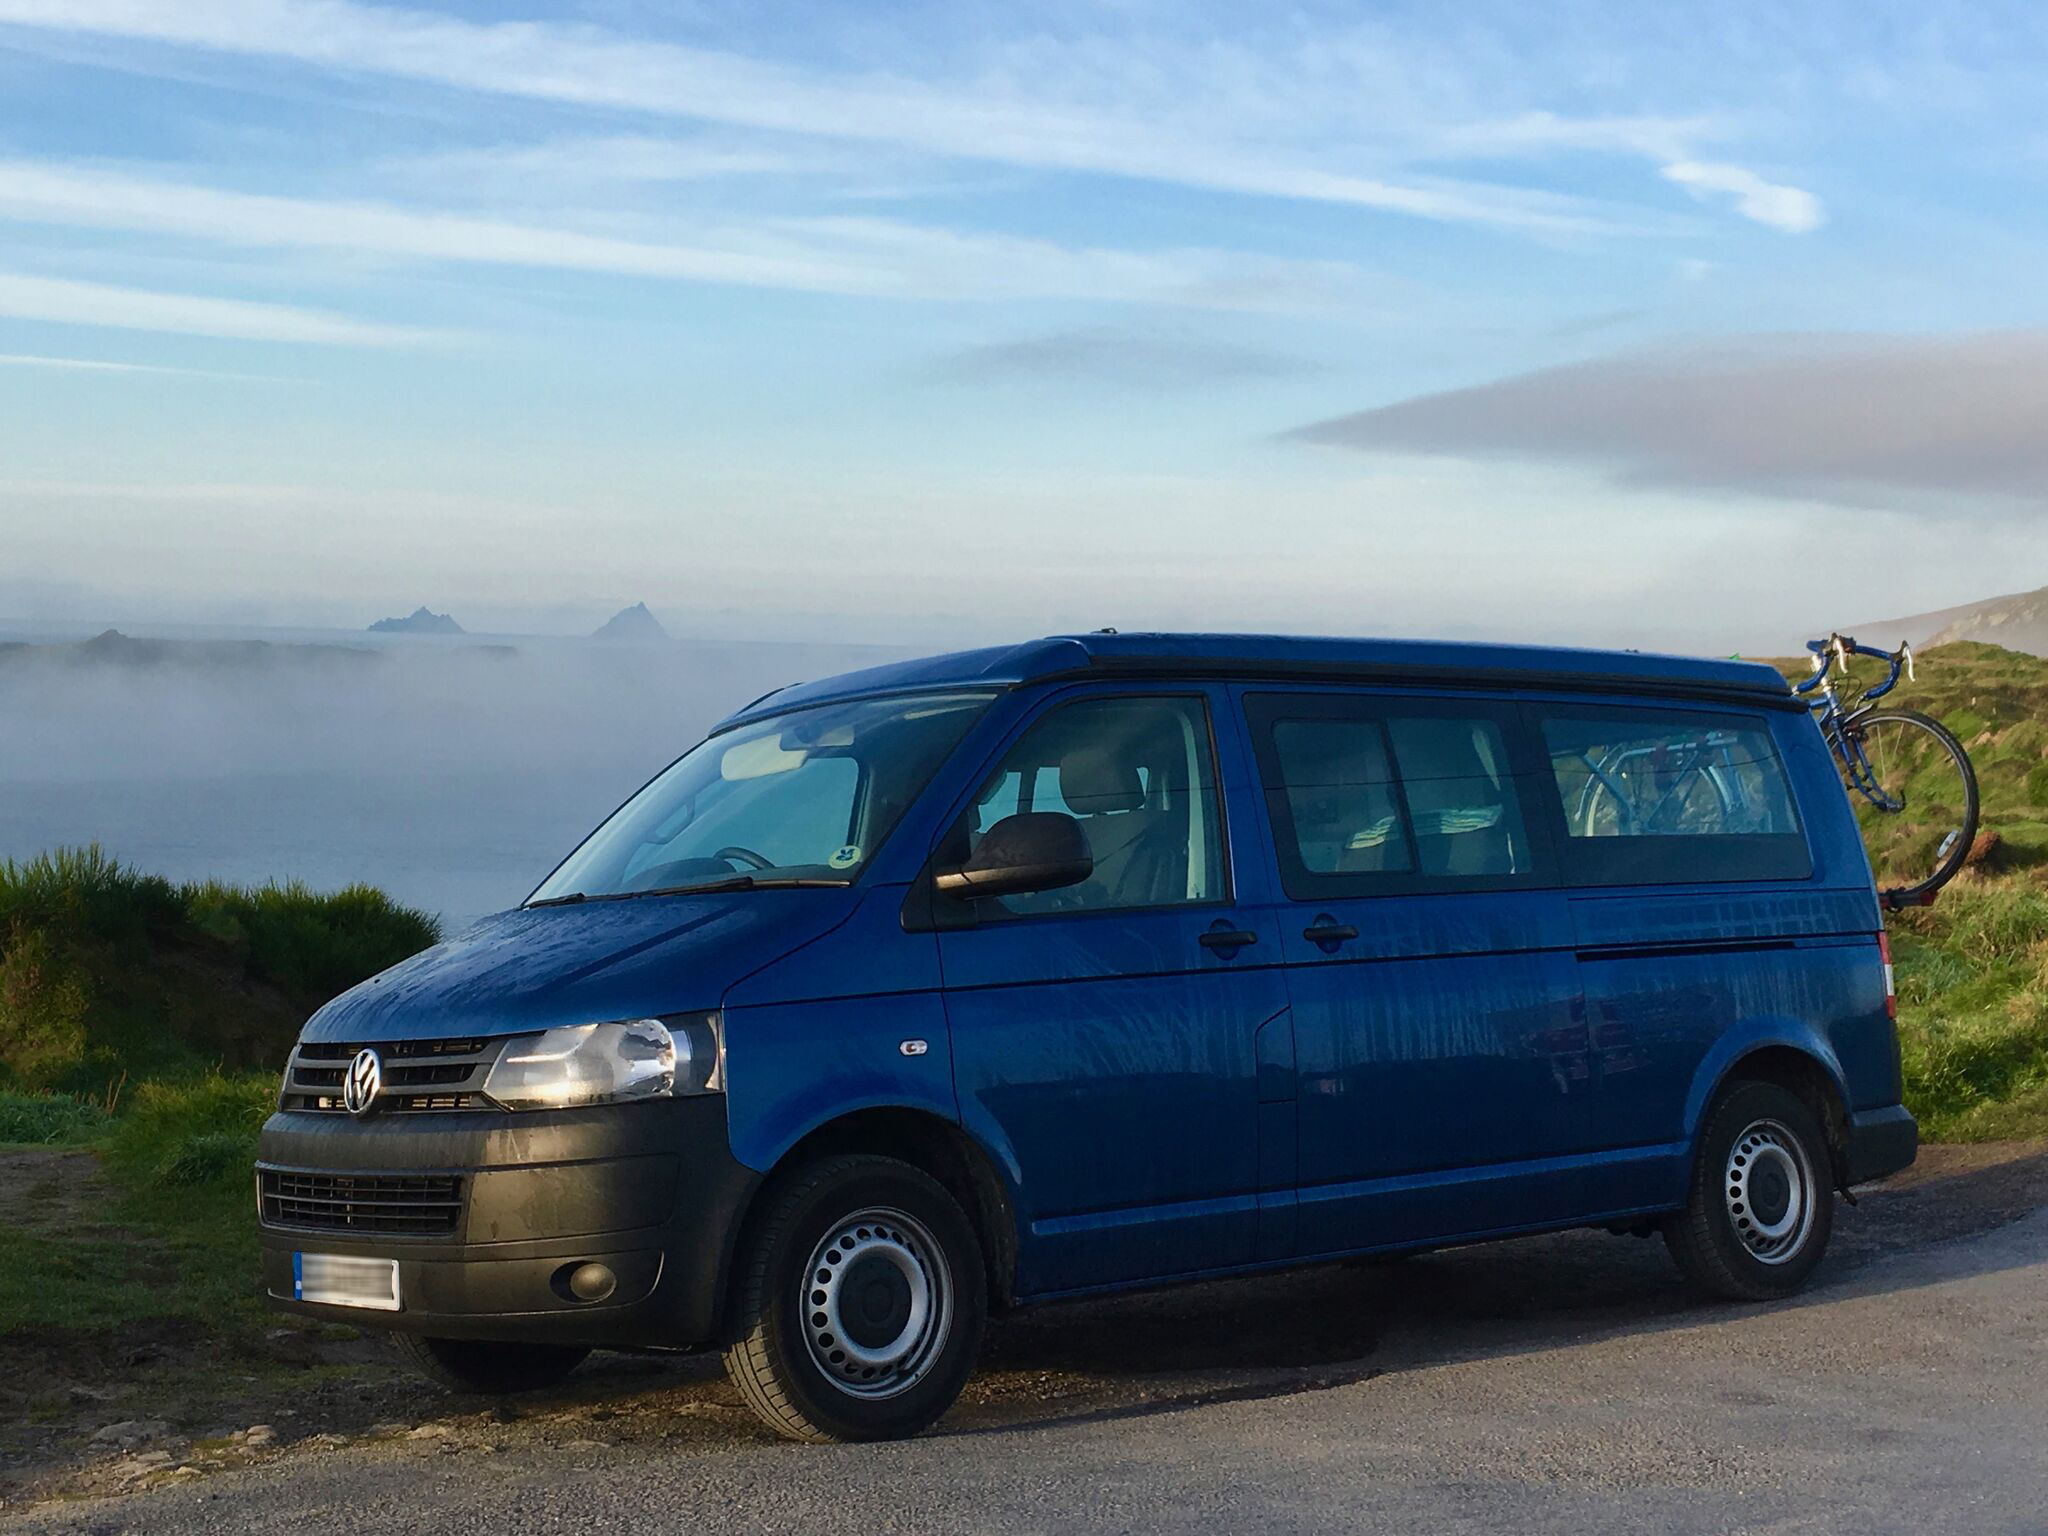 Blue T5 campervan